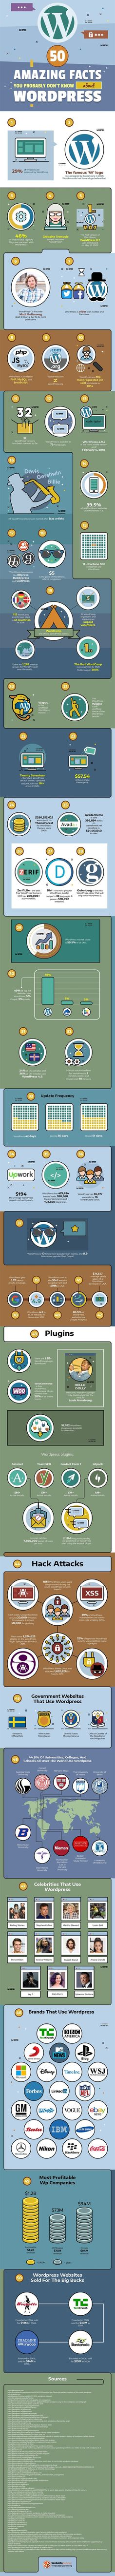 50 Amazing Facts You Probably Didn't Know About WordPress [Infographic]